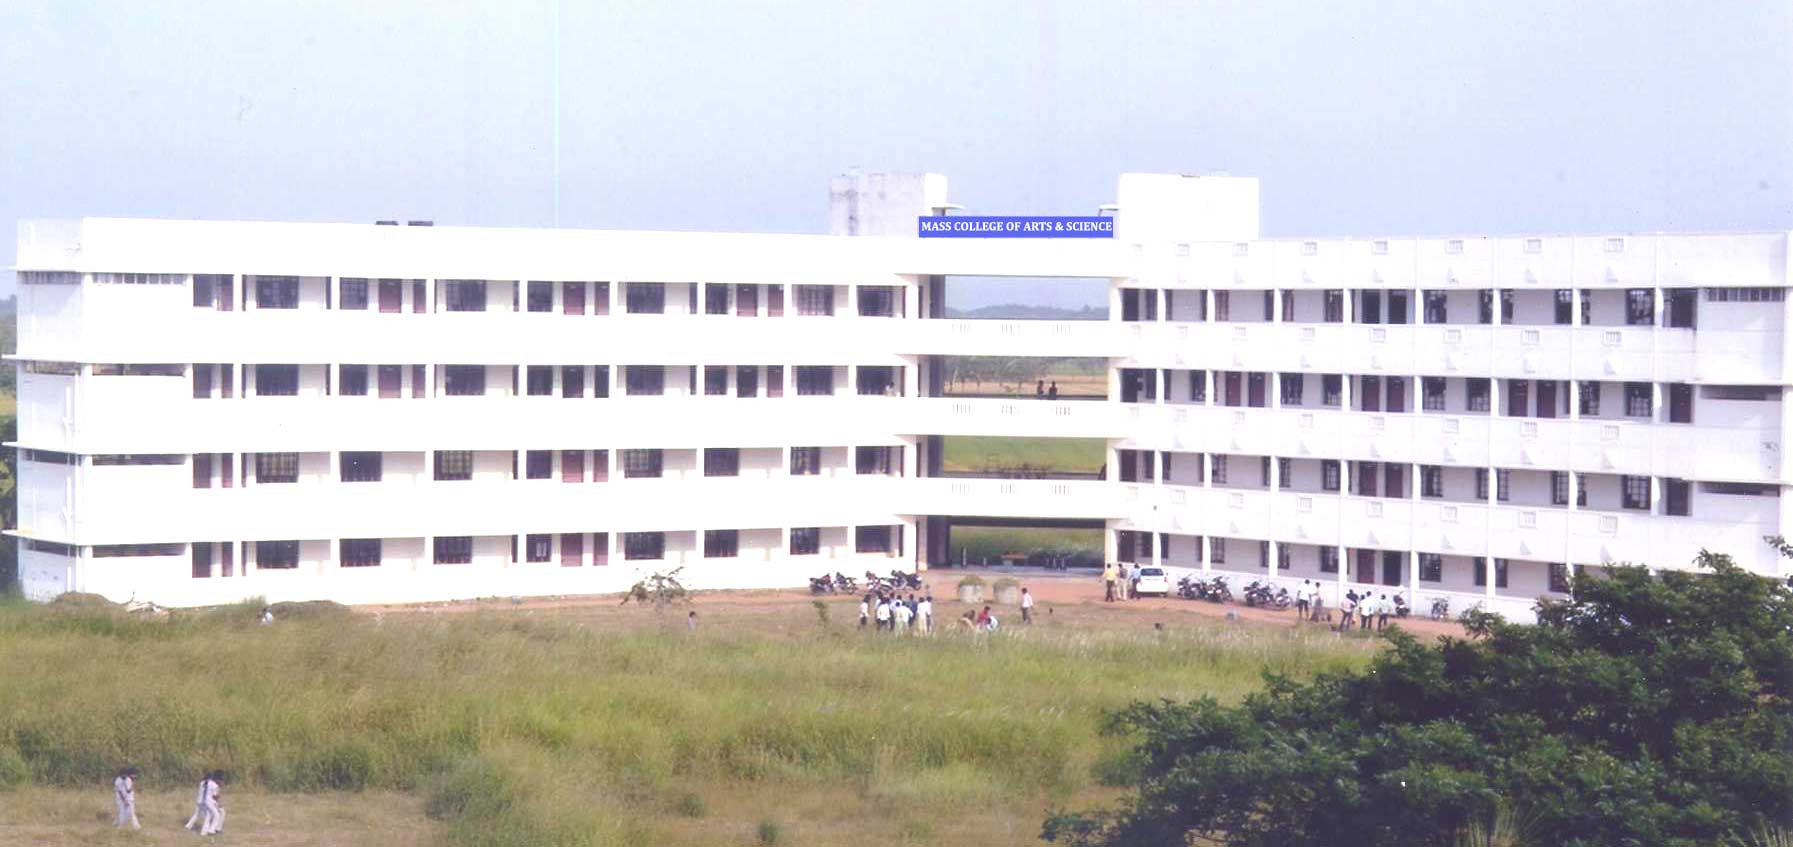 Mass College of Arts and Science